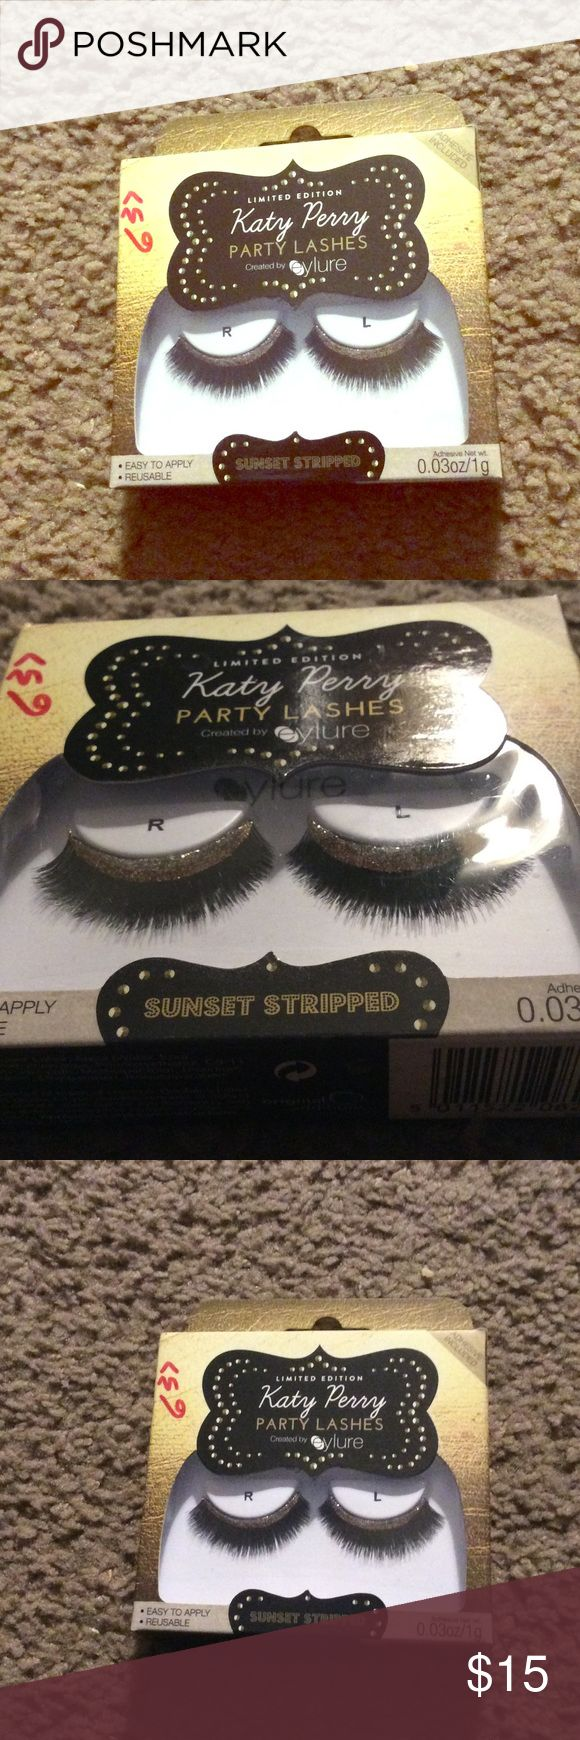 Katy Perry party gold false eyelashes new Brand new, never used. Katy Perry false fake eyelashes with gold glitter trim. Purchased from Ulta. Perfect for your next party, Halloween costume, or looking extra glam in the holiday season! Check out my closet, I offer a discount on bundles! eylure Makeup False Eyelashes